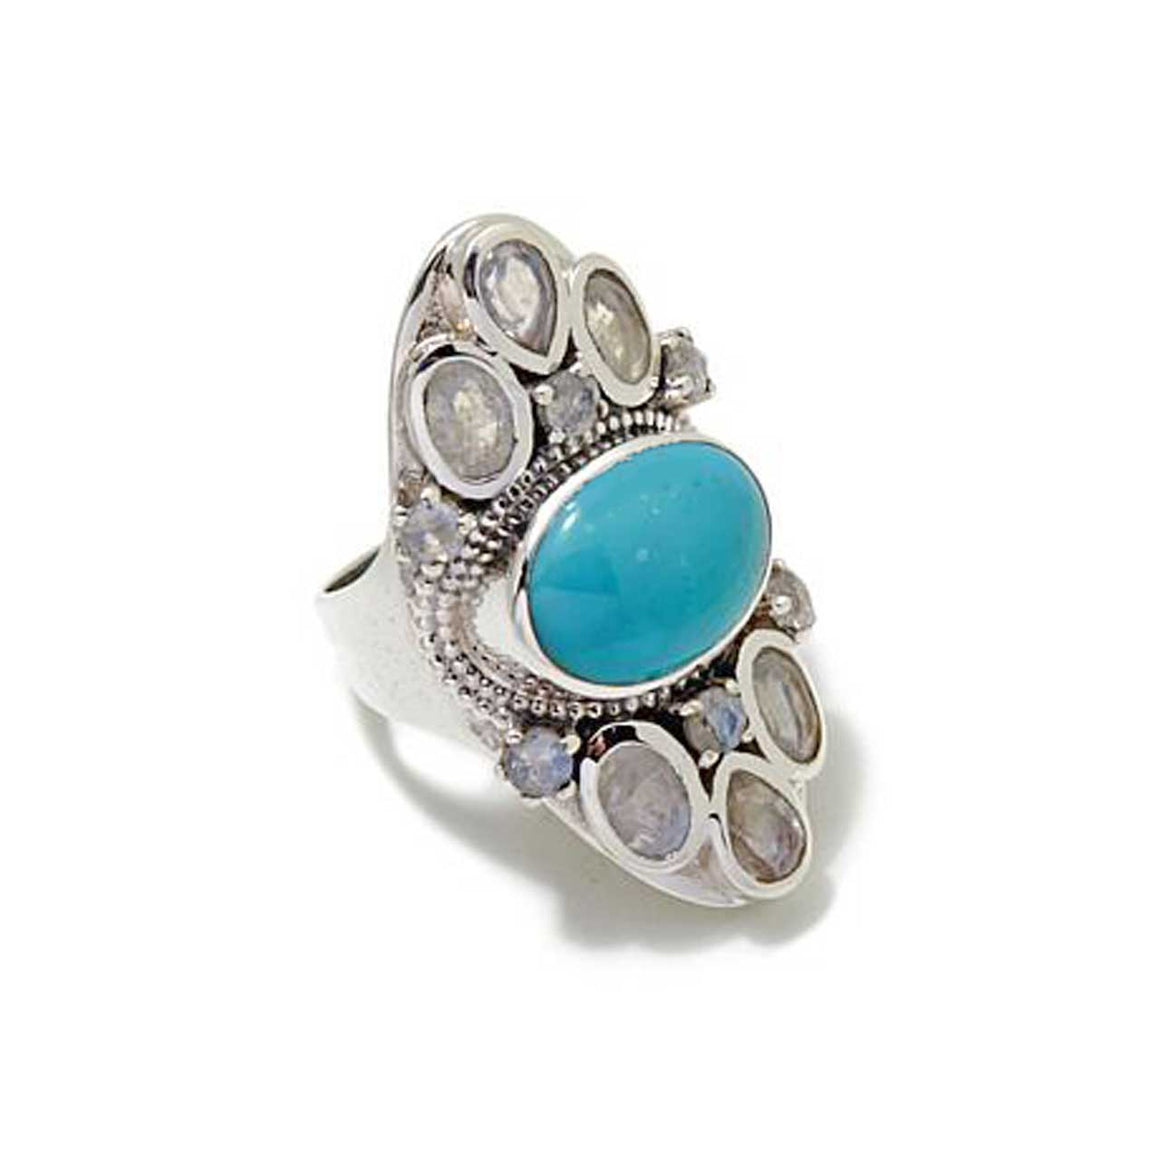 Turquoise & Rainbow Moonstone Gemstone Ring